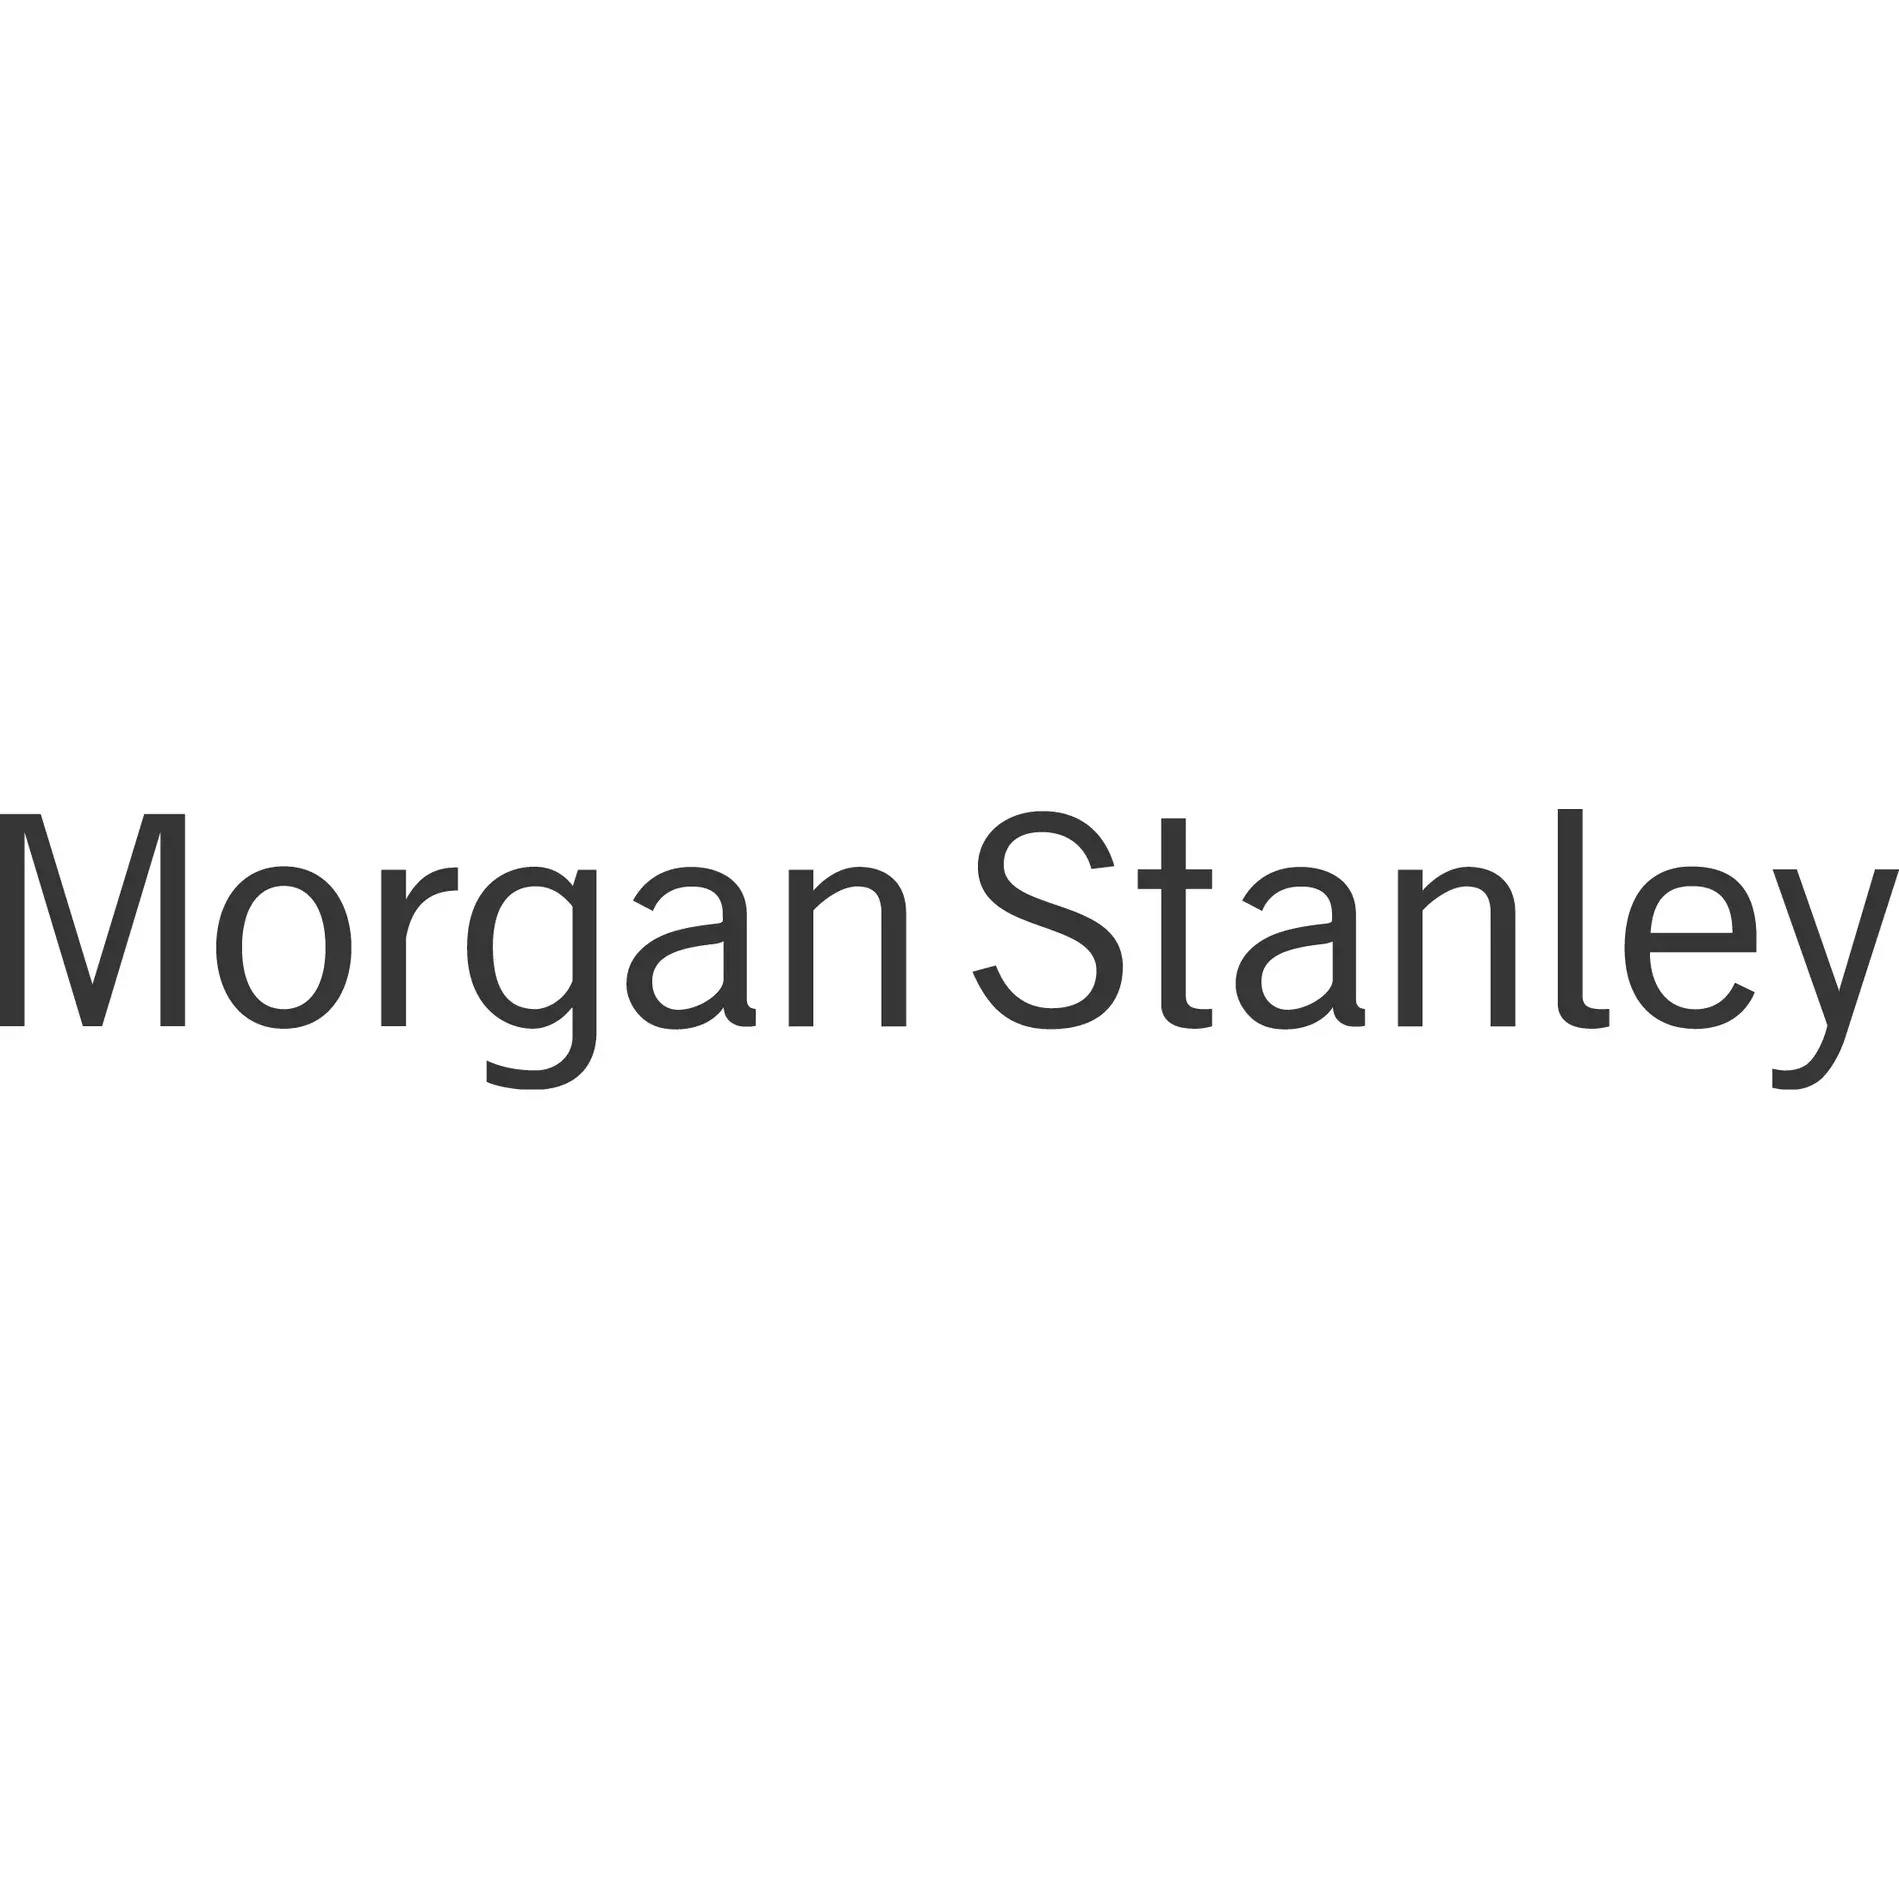 The Coe Group - Morgan Stanley | Financial Advisor in Pasadena,California